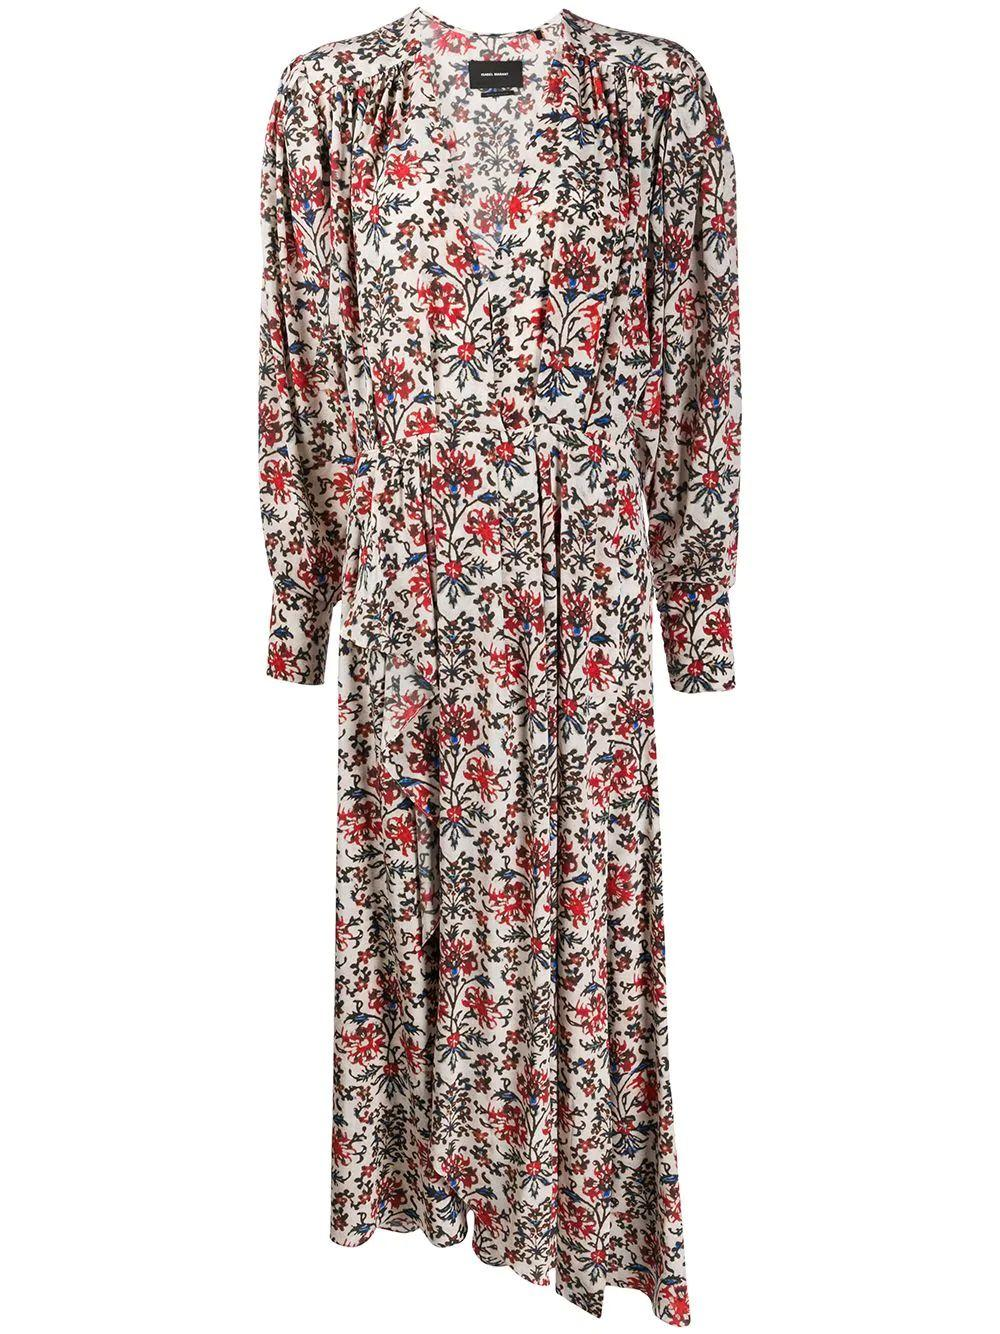 Long Sleeve V Neck Floral Printed Dress